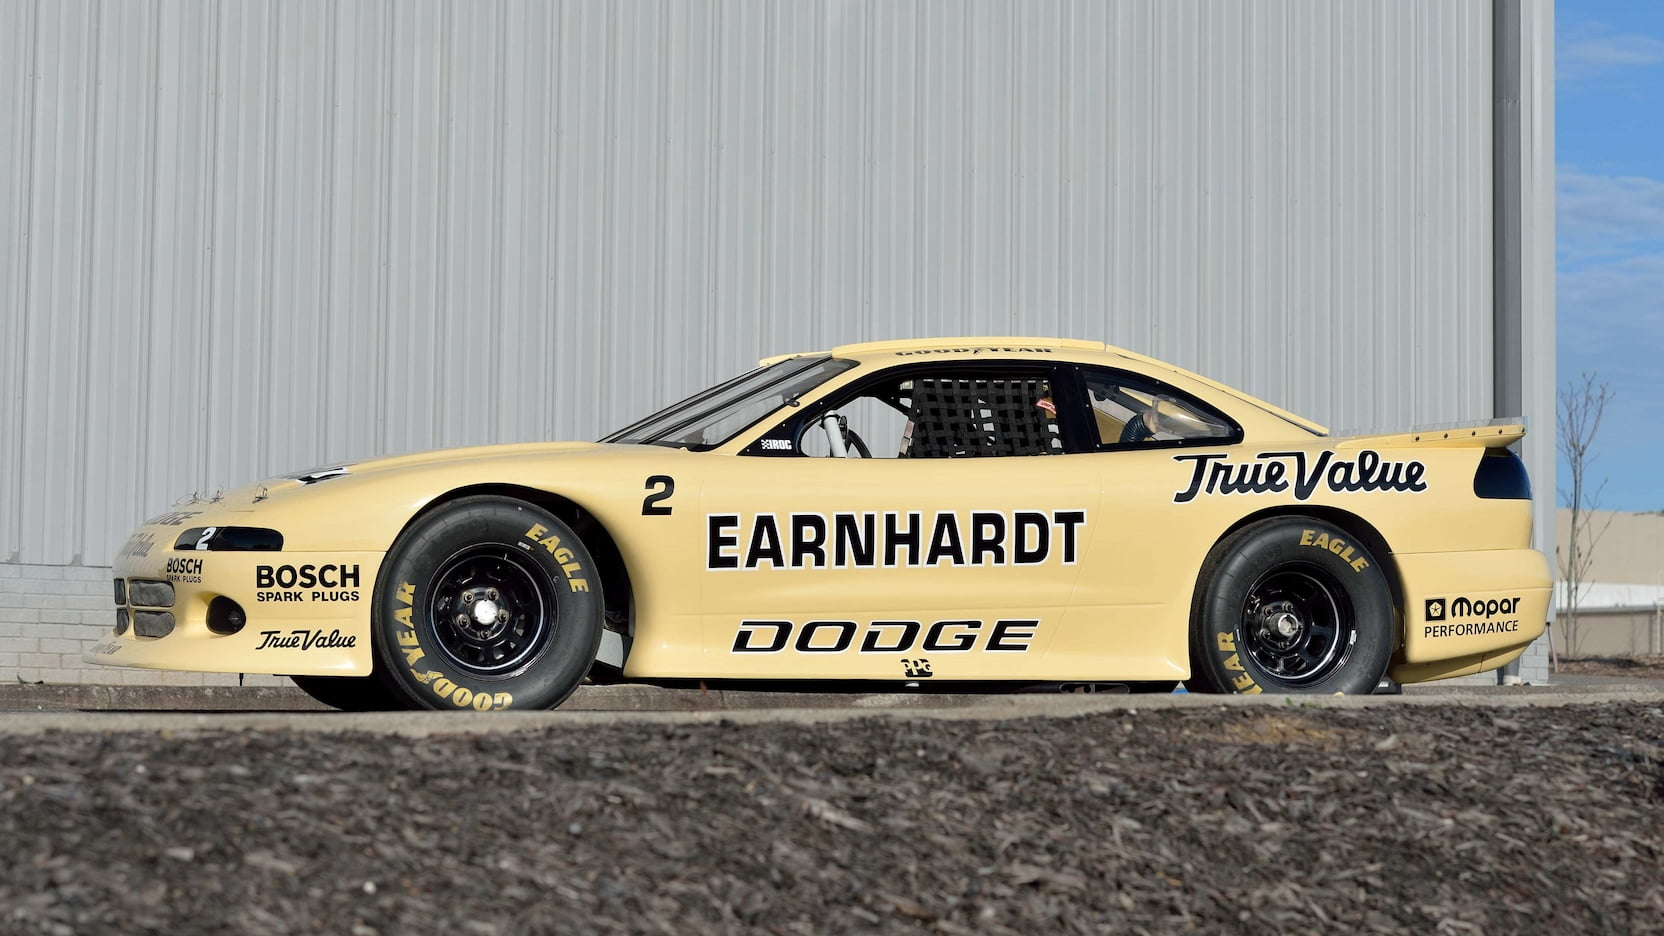 1994 Dodge Avenger IROC race car